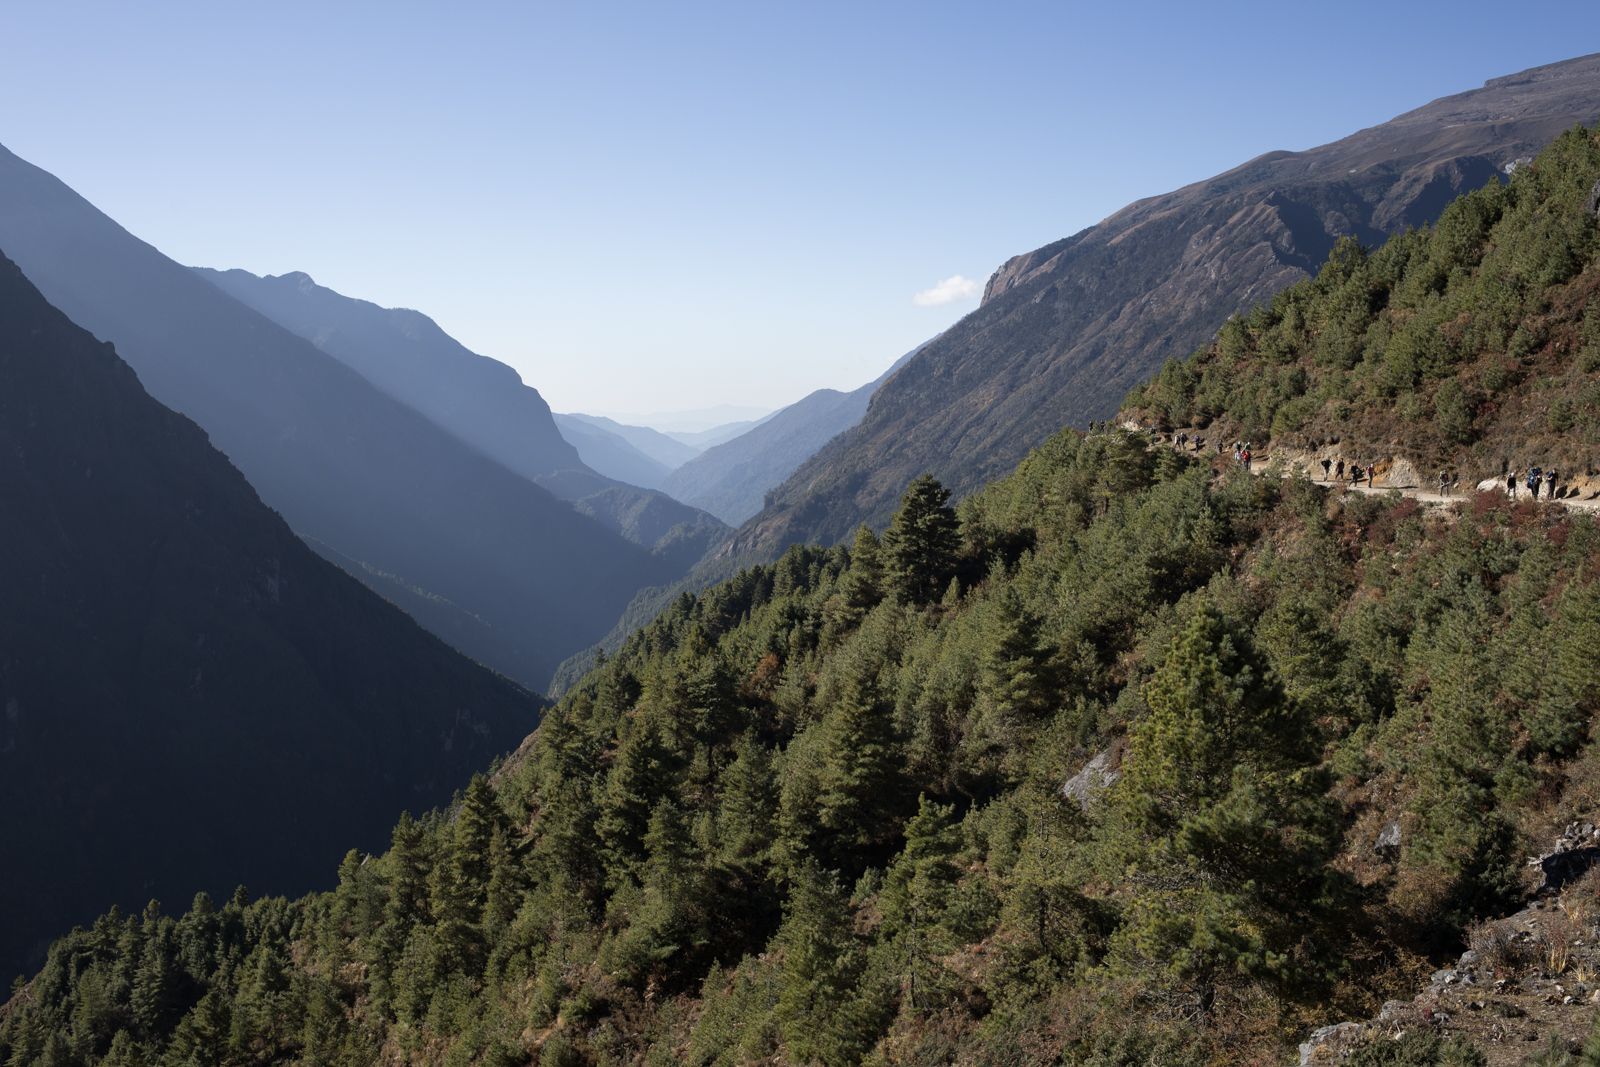 After an acclimatization day in Namche Baazar, we began our trek towards Doboche. As we hiked, we walked towards the mountains and made our way further and further into the valley.